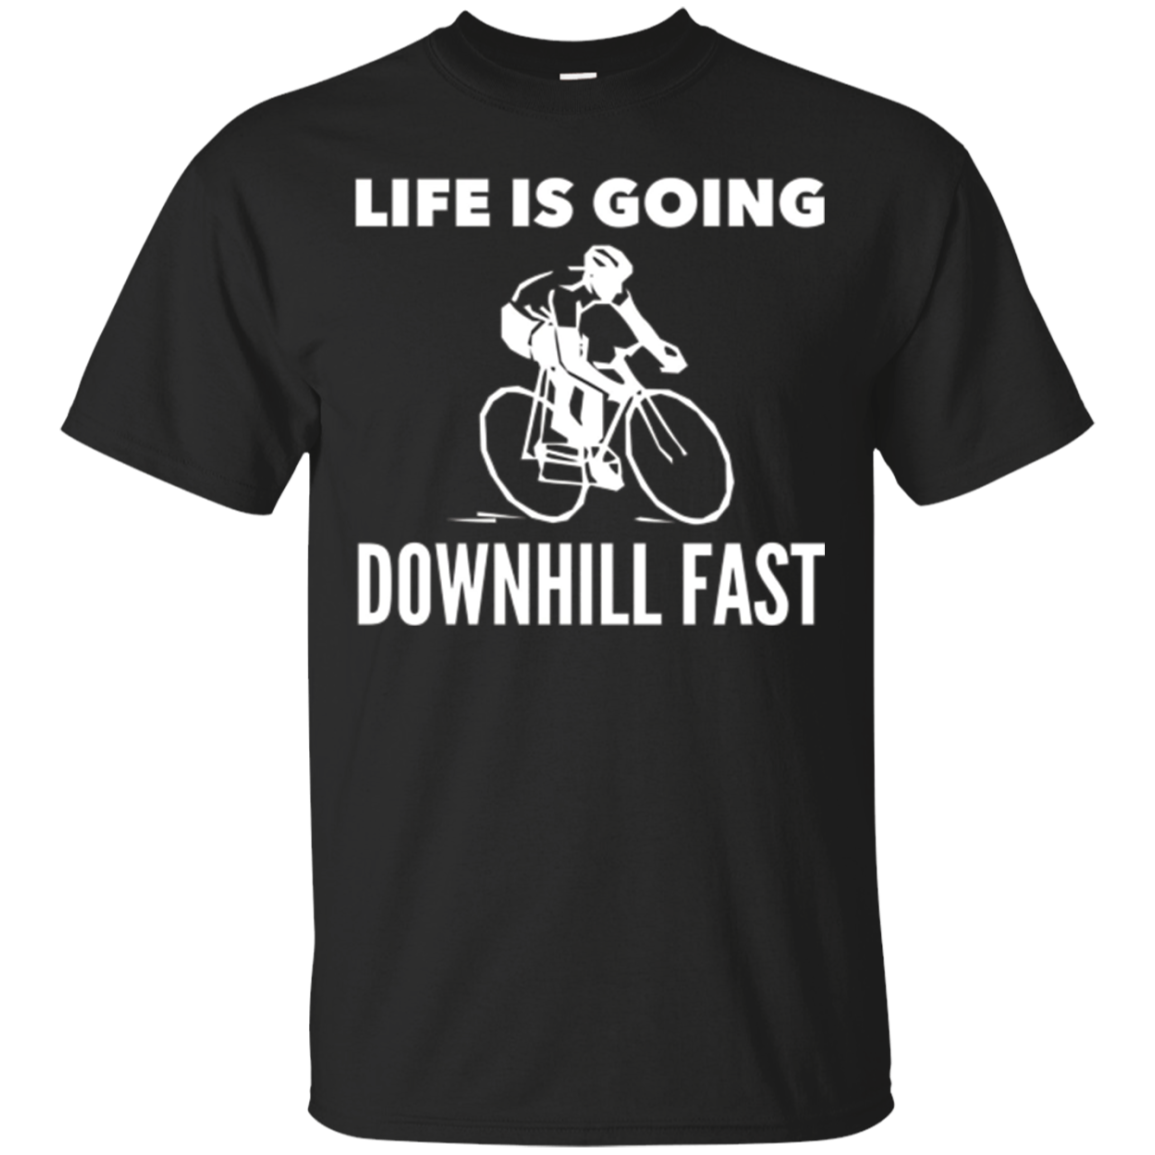 Funny cycling t shirt - Life is Going Downhill Fast